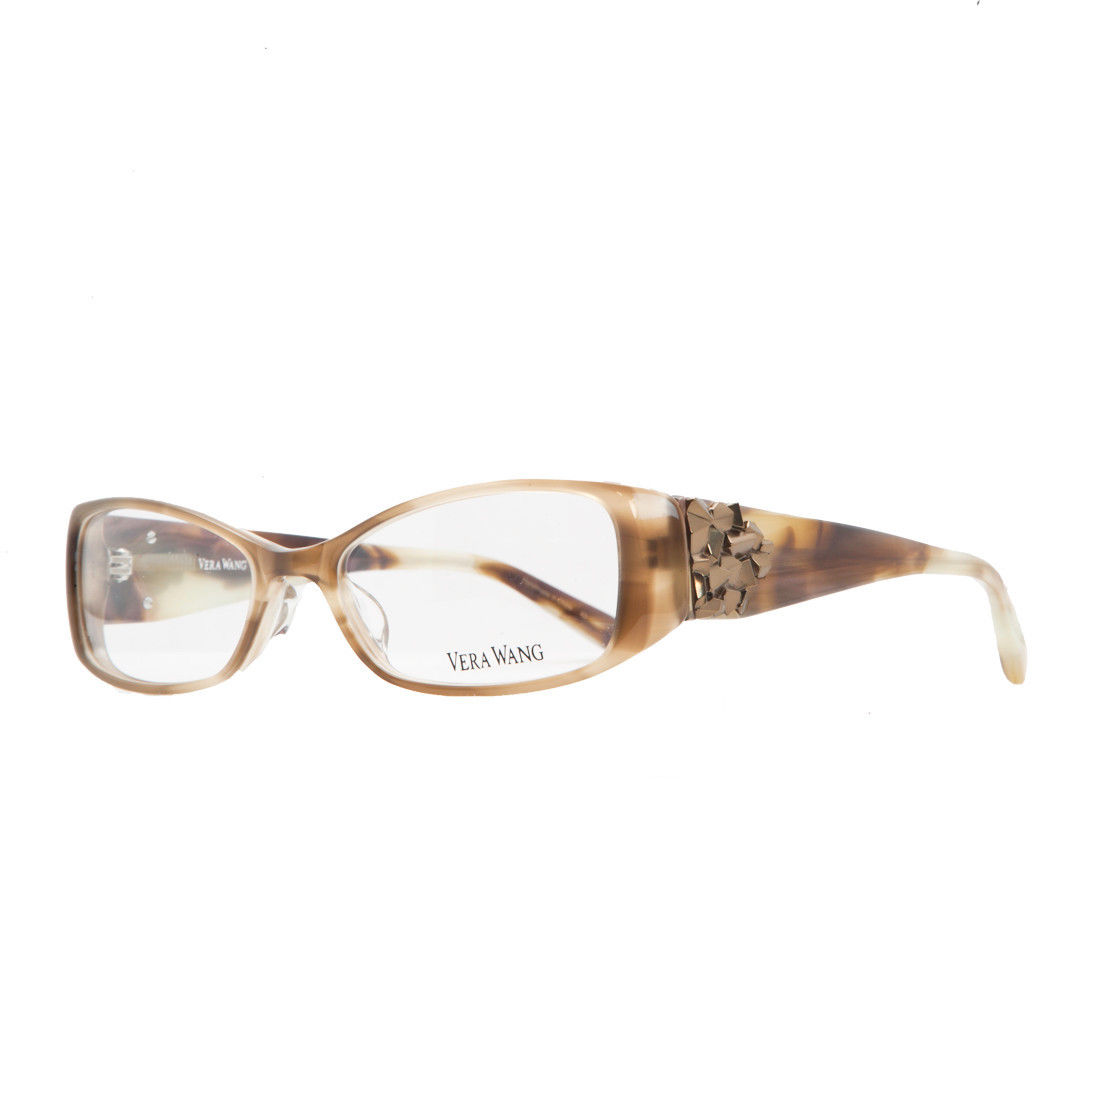 Vera Wang V 076 BR 51 Brown Full Rim Womens Optical Frame